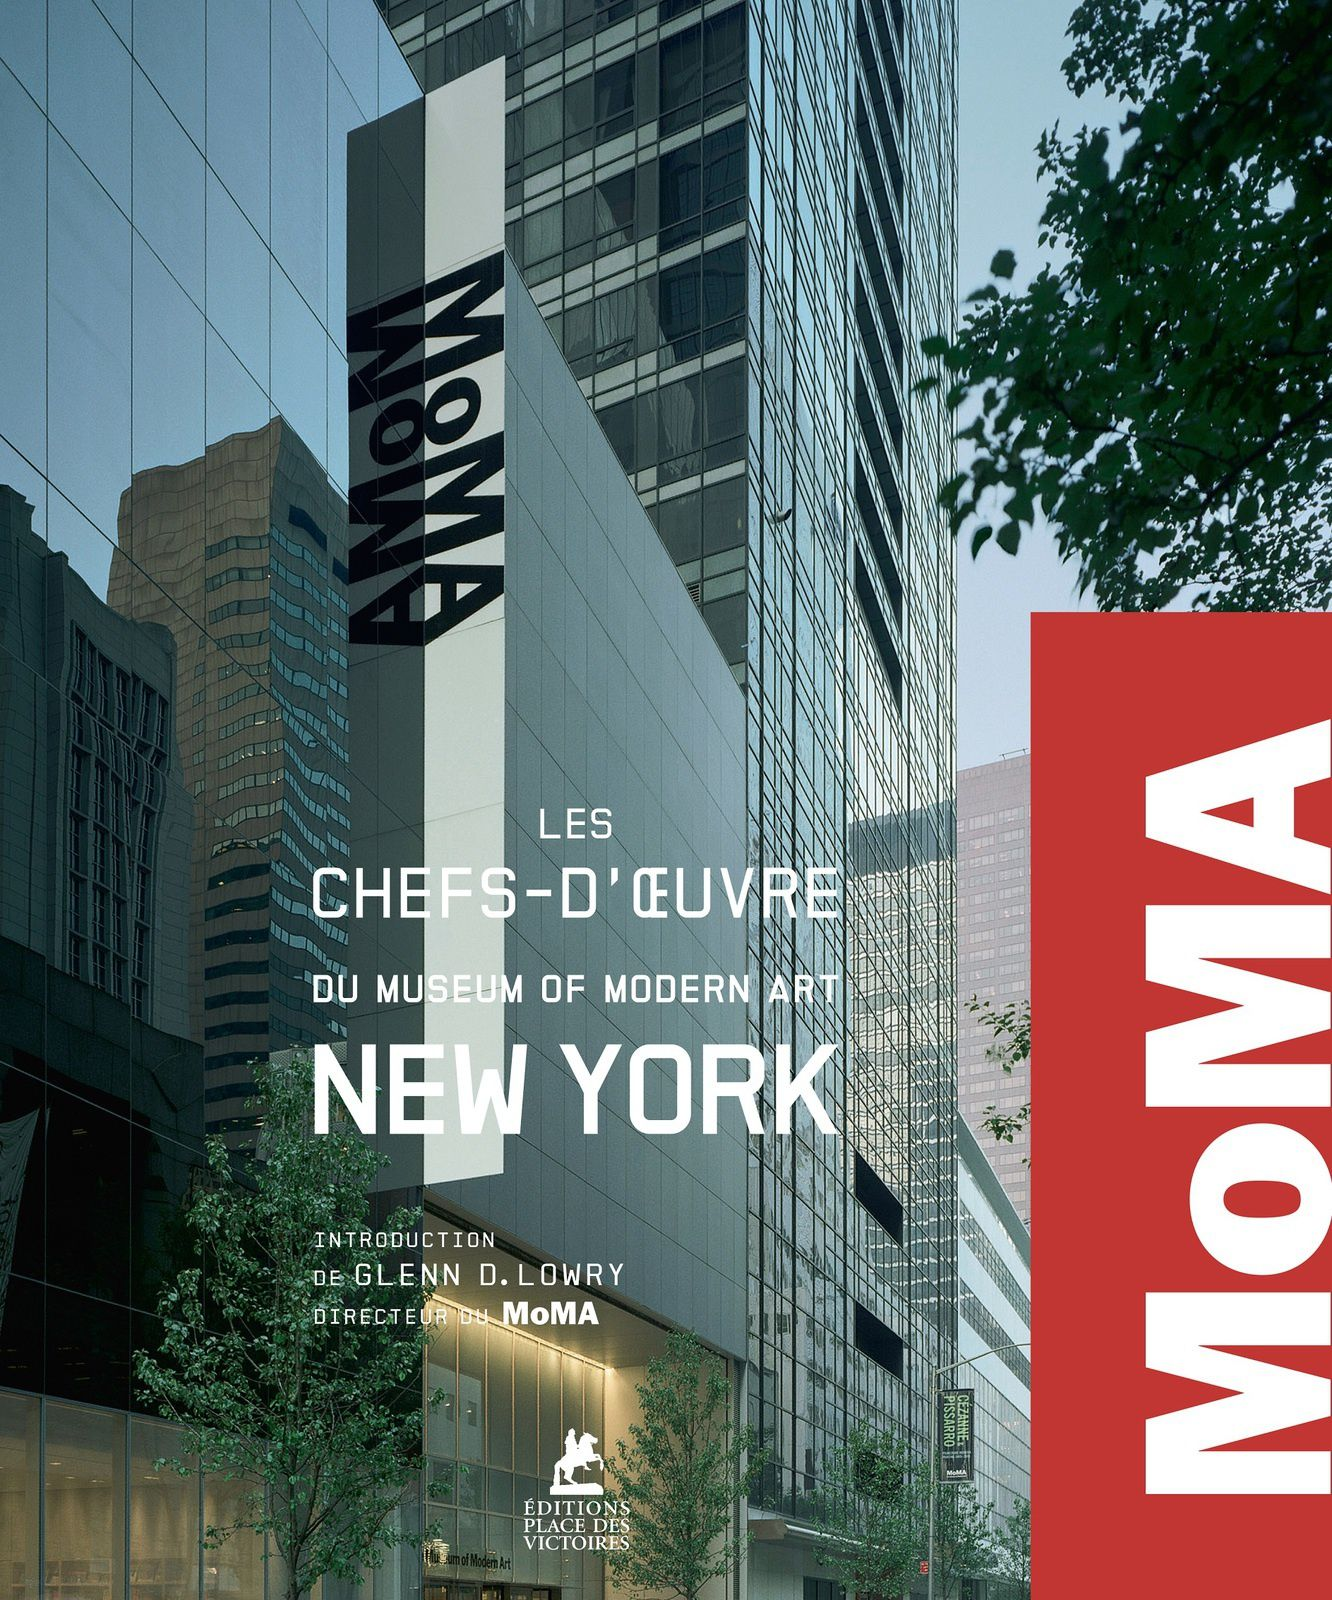 les chefs d uvre du museum of modern art new york le moma. Black Bedroom Furniture Sets. Home Design Ideas